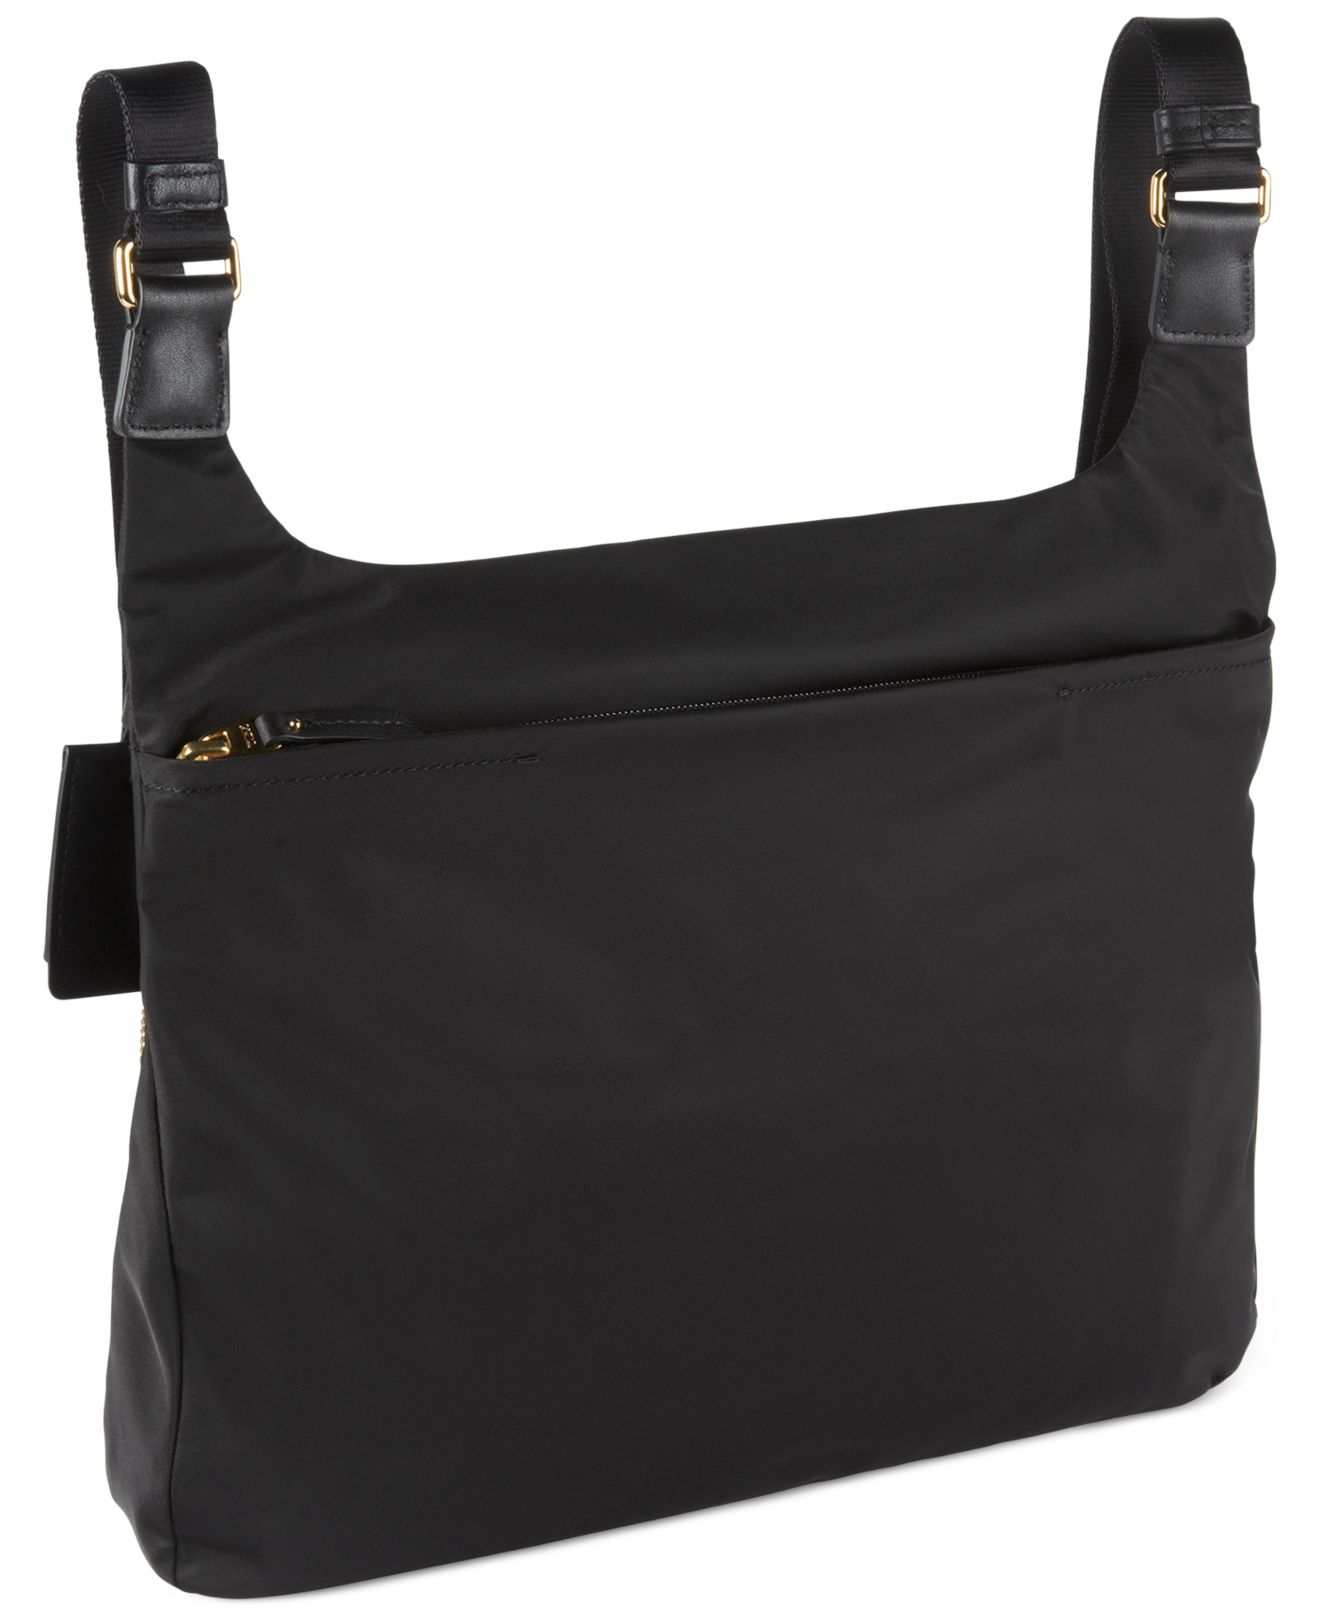 Tumi Luggage Voyageur Sumatra Crossbody Bag 40